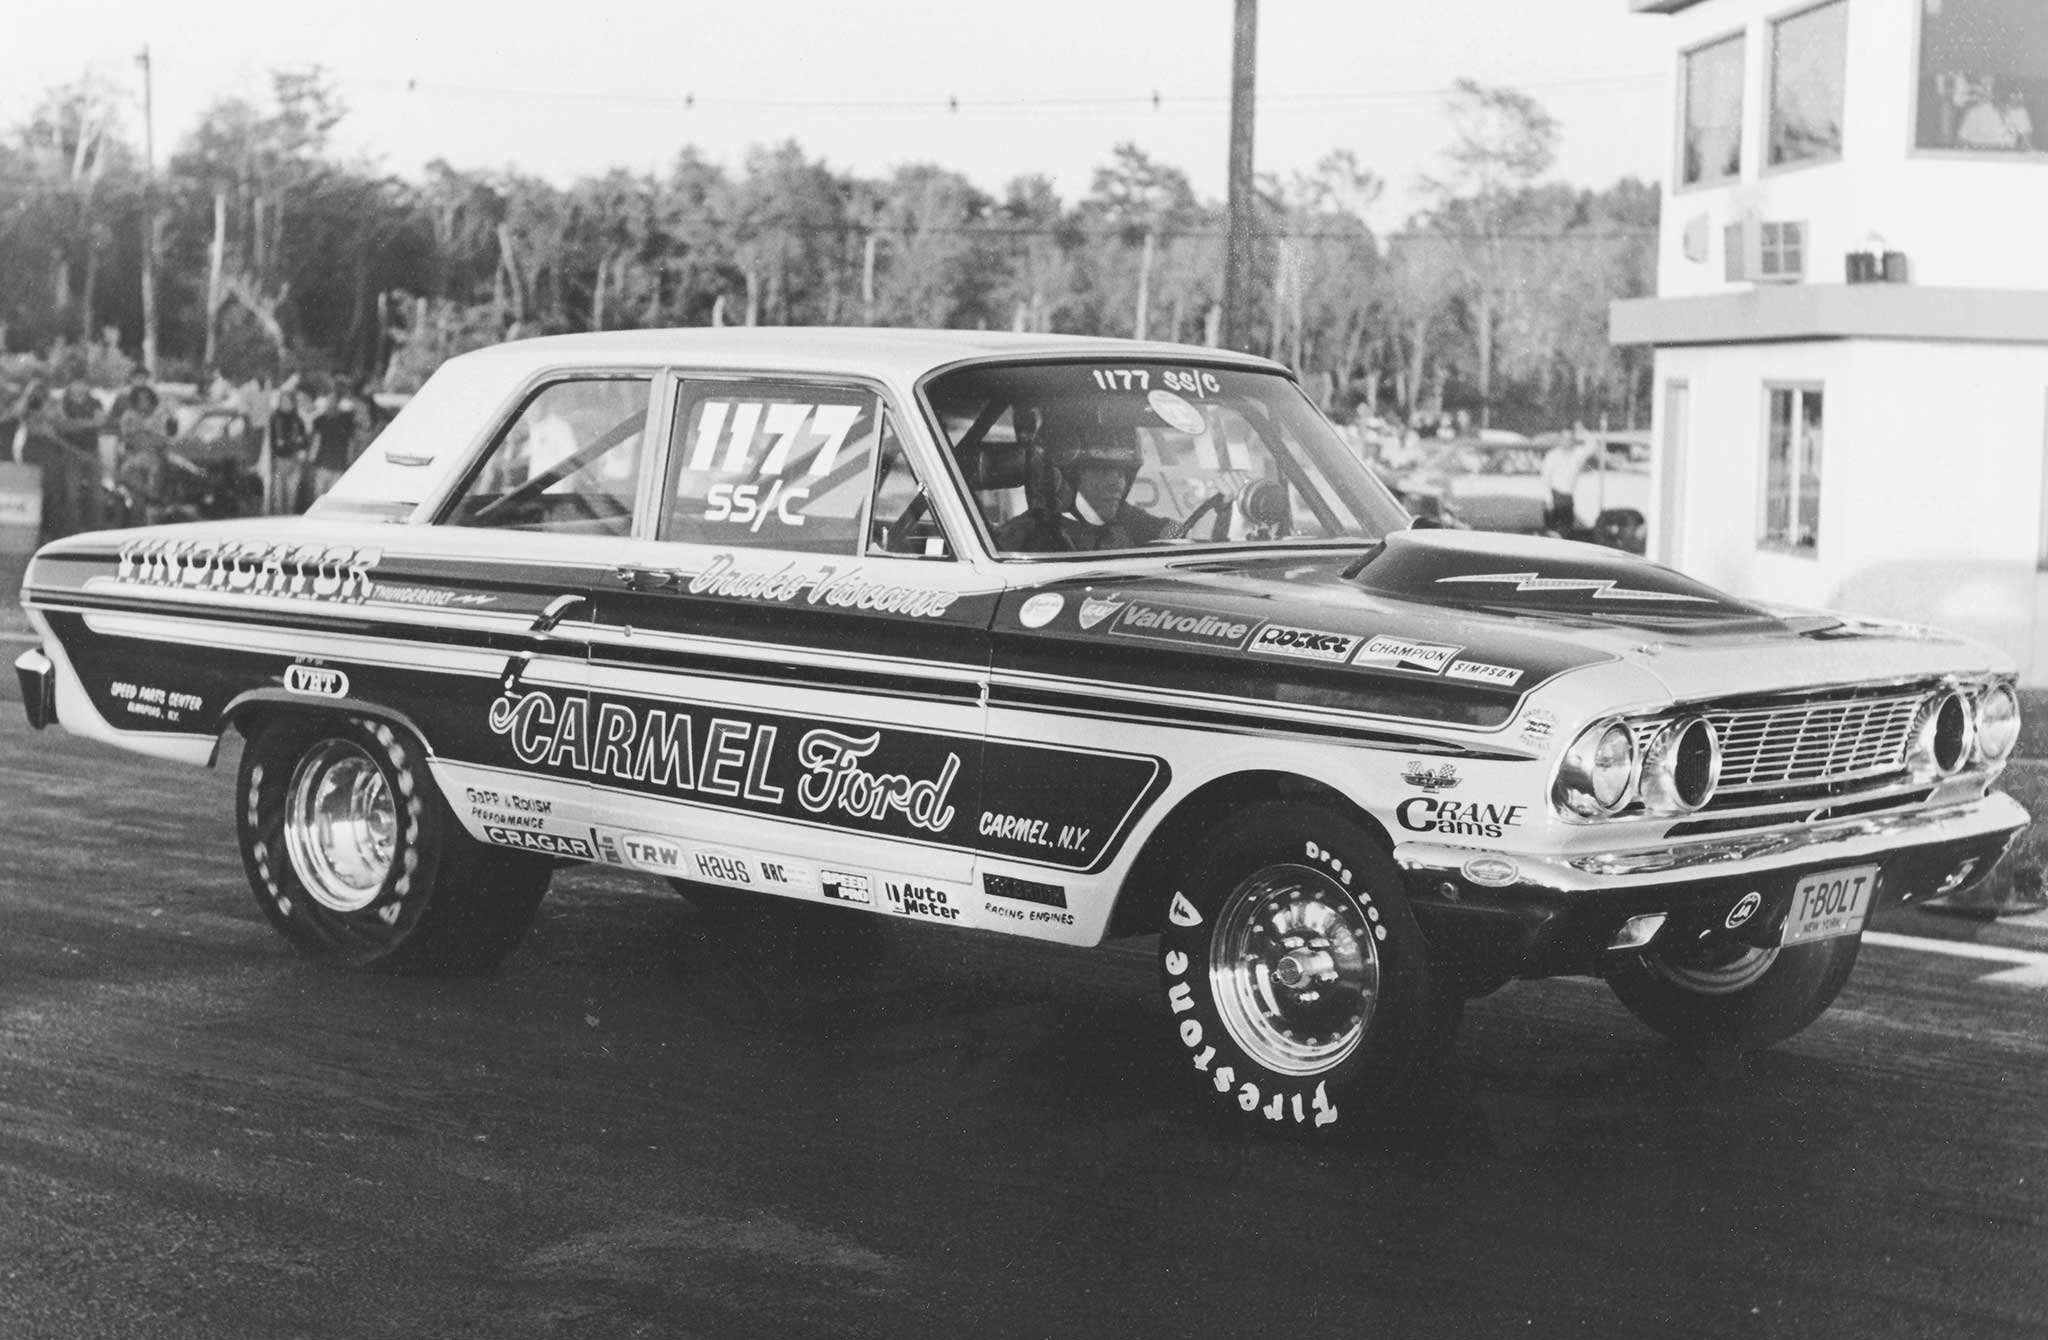 Ford's racing group wanted to put 427-powered Fairlanes in the lineup for Grand National racing. When NASCAR said no, Ford promptly set loose its Medium Riser Fairlanes on dragstrip tarmac. Here Drake Viscome gets a hat in his Vindicator SS/C Thunderbolt.